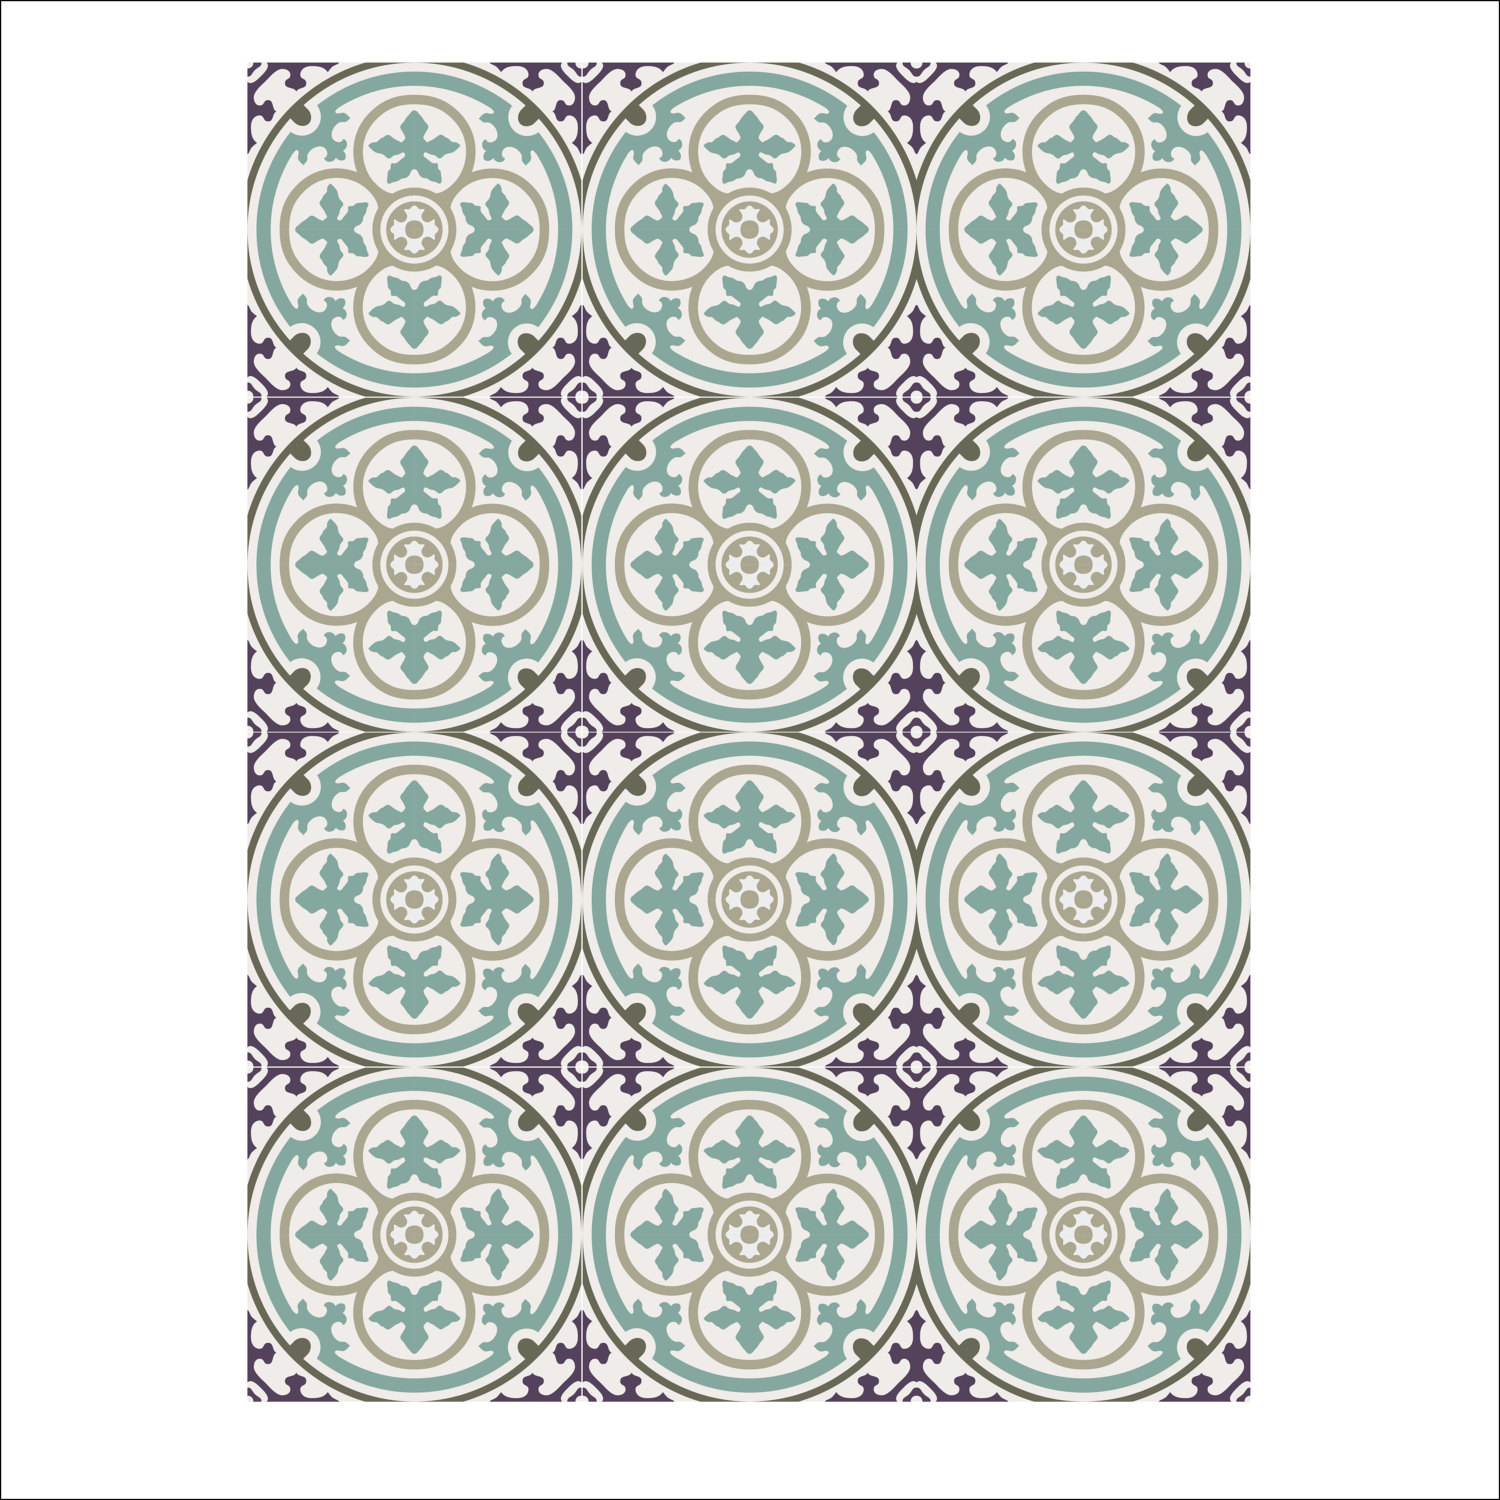 floor-tile-decalsstickers-vinyl-decals-vinyl-floor-self-adhesive-tile-stickers-decorative-tile-flooring-removable-stickers-no-106-58a0c45e2.jpg